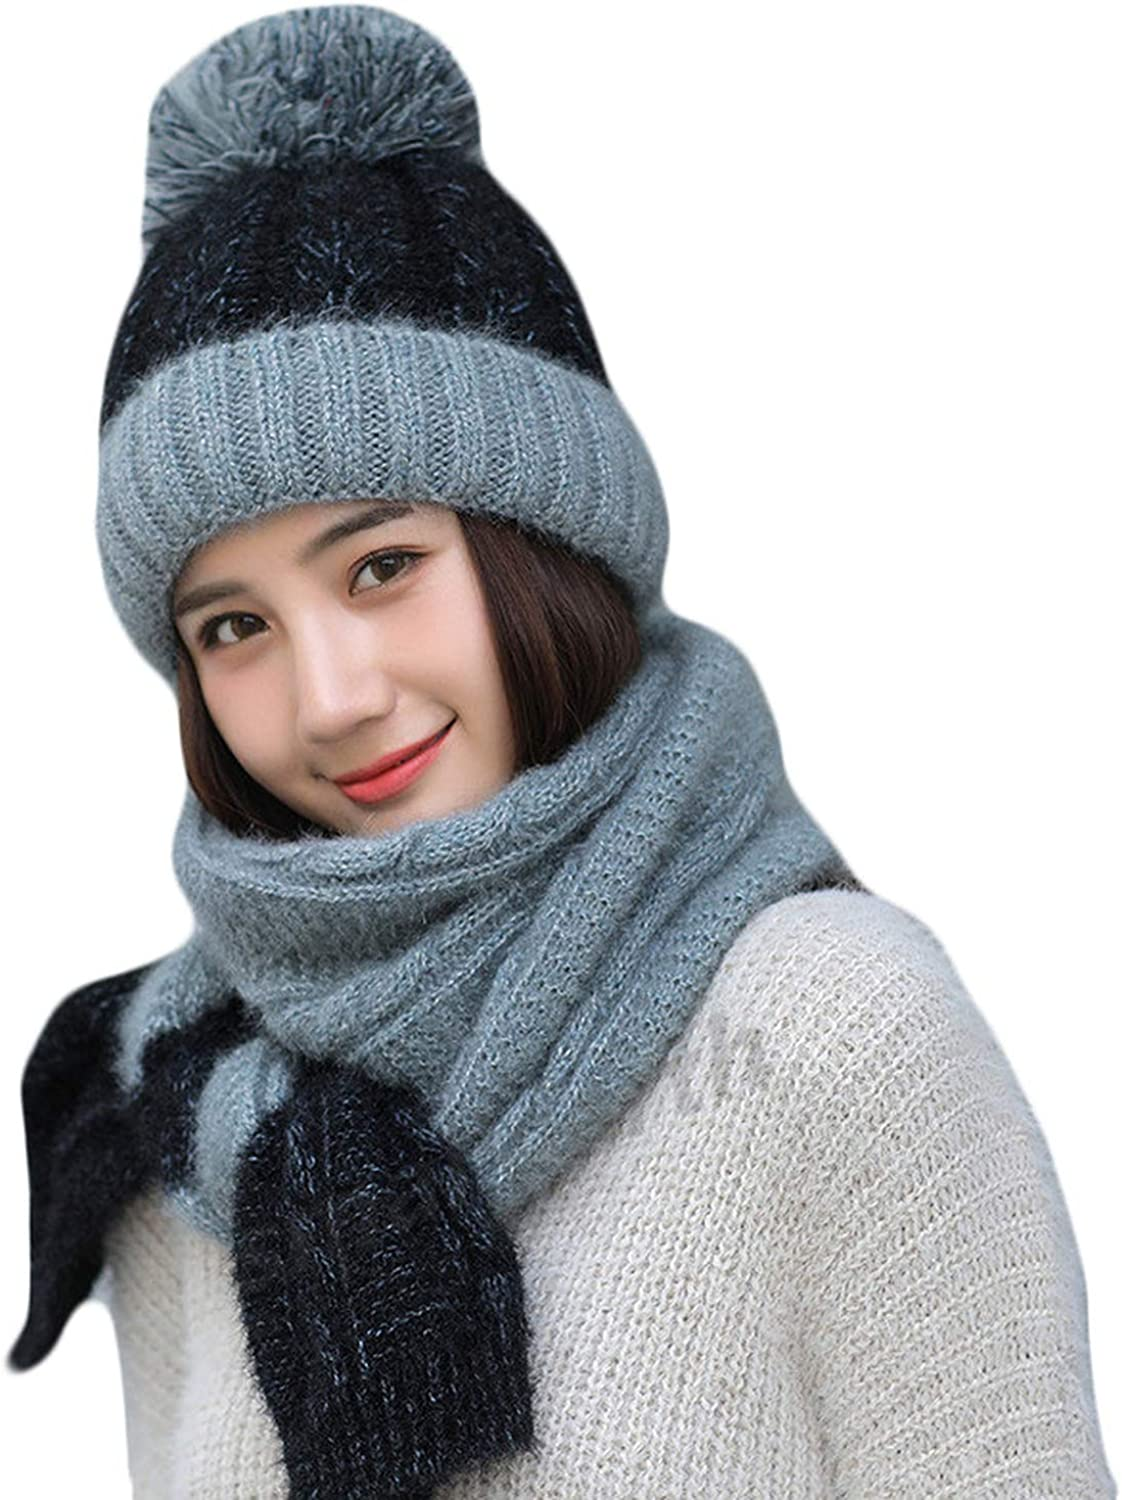 d587444e Winter Women Knitted Hat Scarf 2Pcs Set Fashion Wool Thick Hat Collars  Female Warm Hat Long Scarf Set Cute Snow Cap Beanies nqbmsf6595-New Clothing